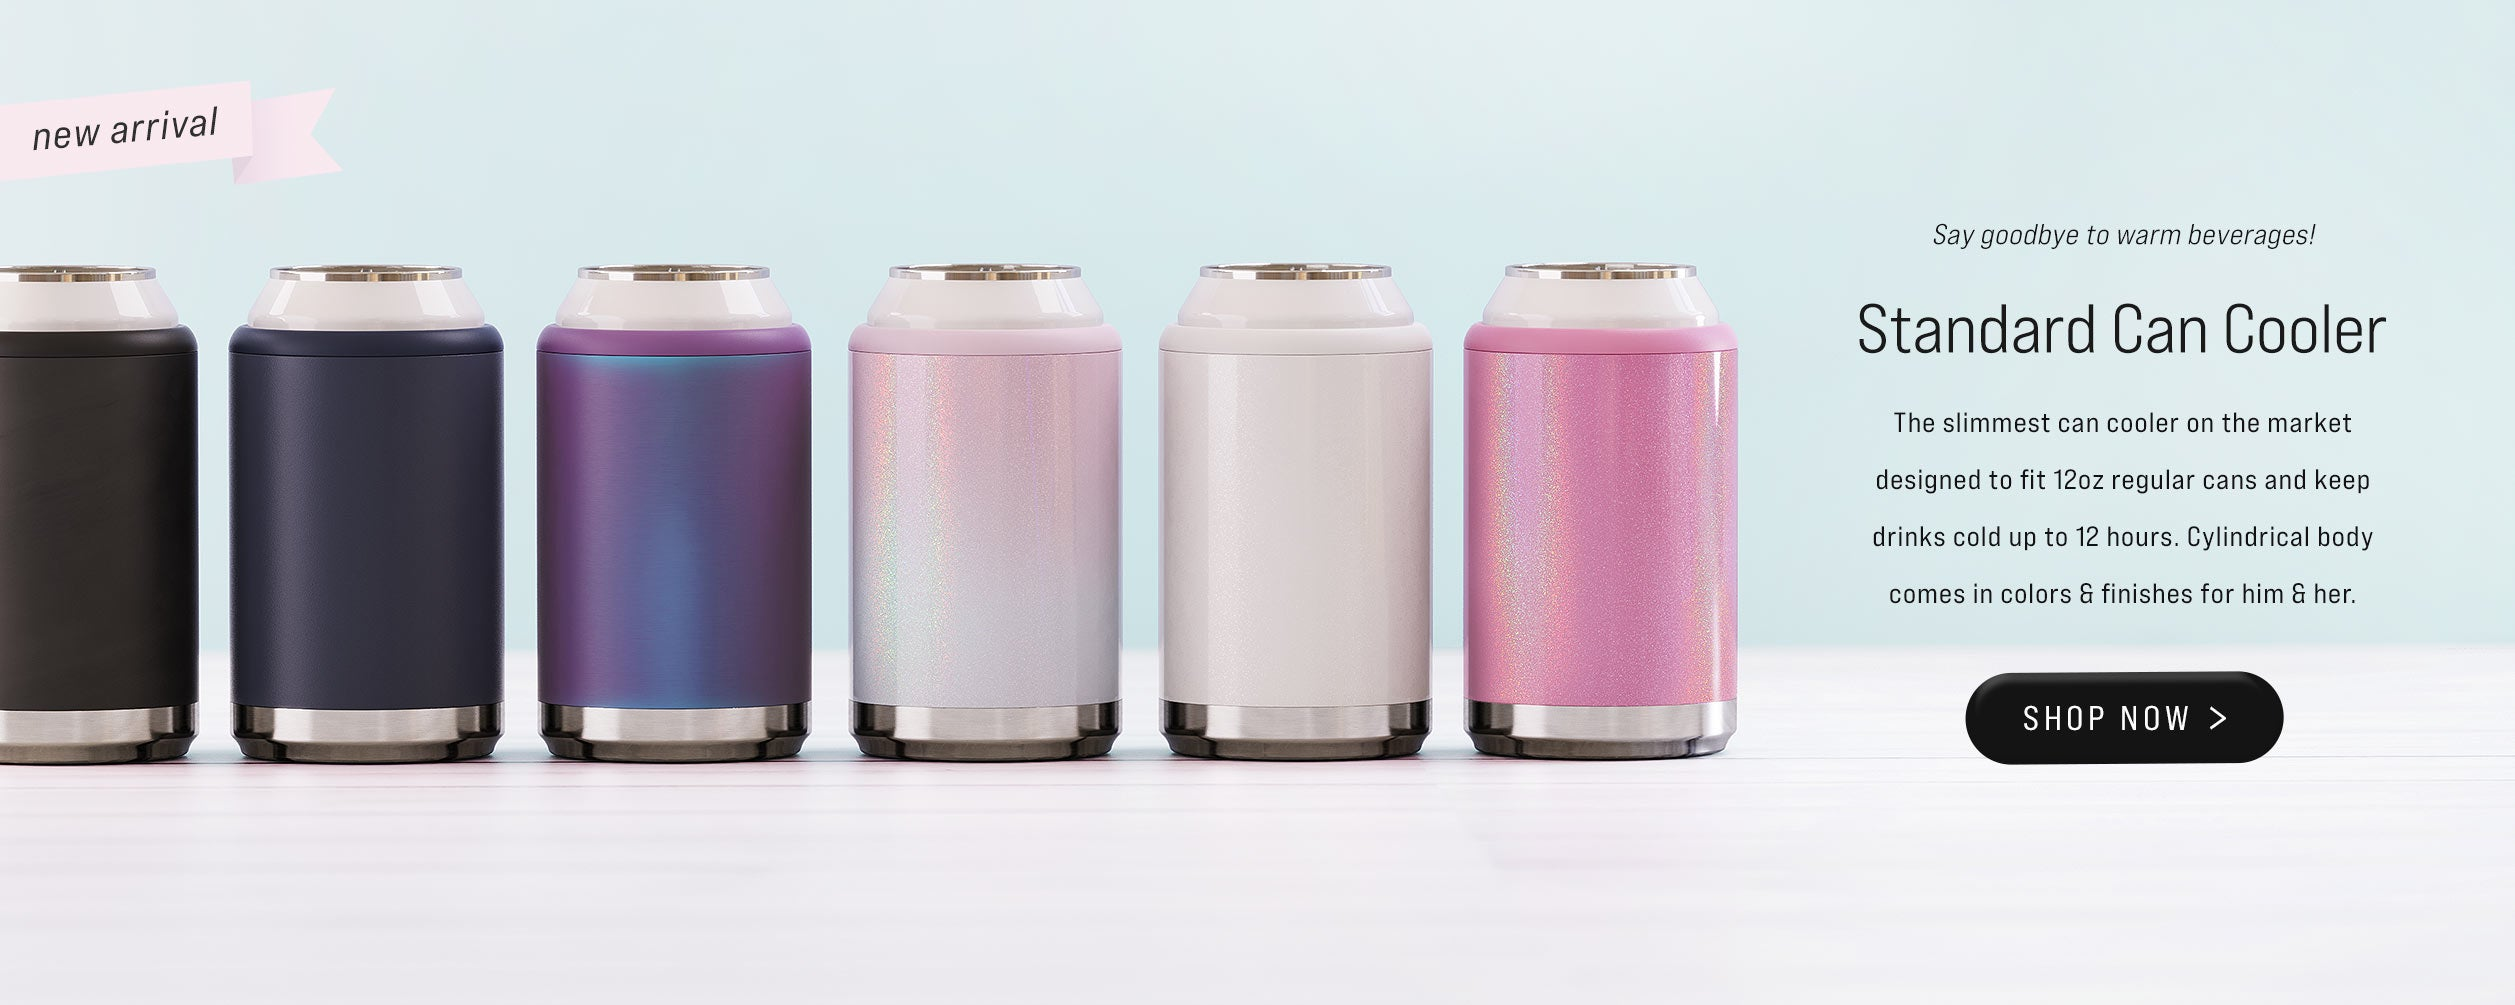 In Stock Page for Standard Can Coolers - 12 oz beverages keep your drink cold and chilled for up to 12 hours